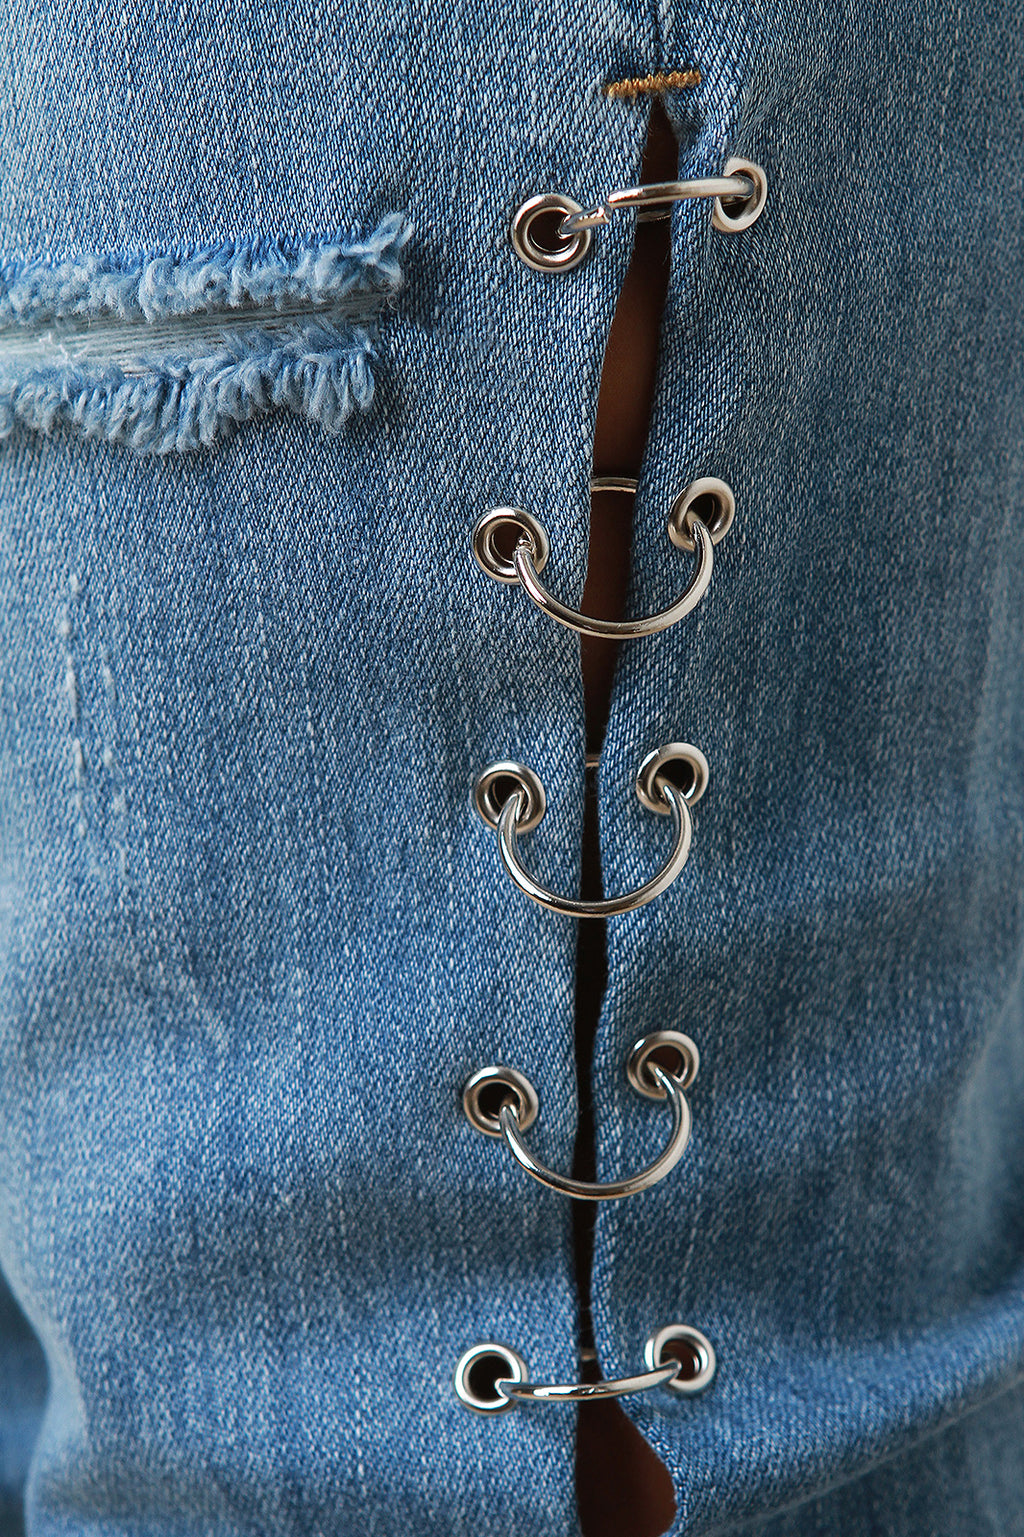 Eyelet Rings Distress Hem Denim Jeans